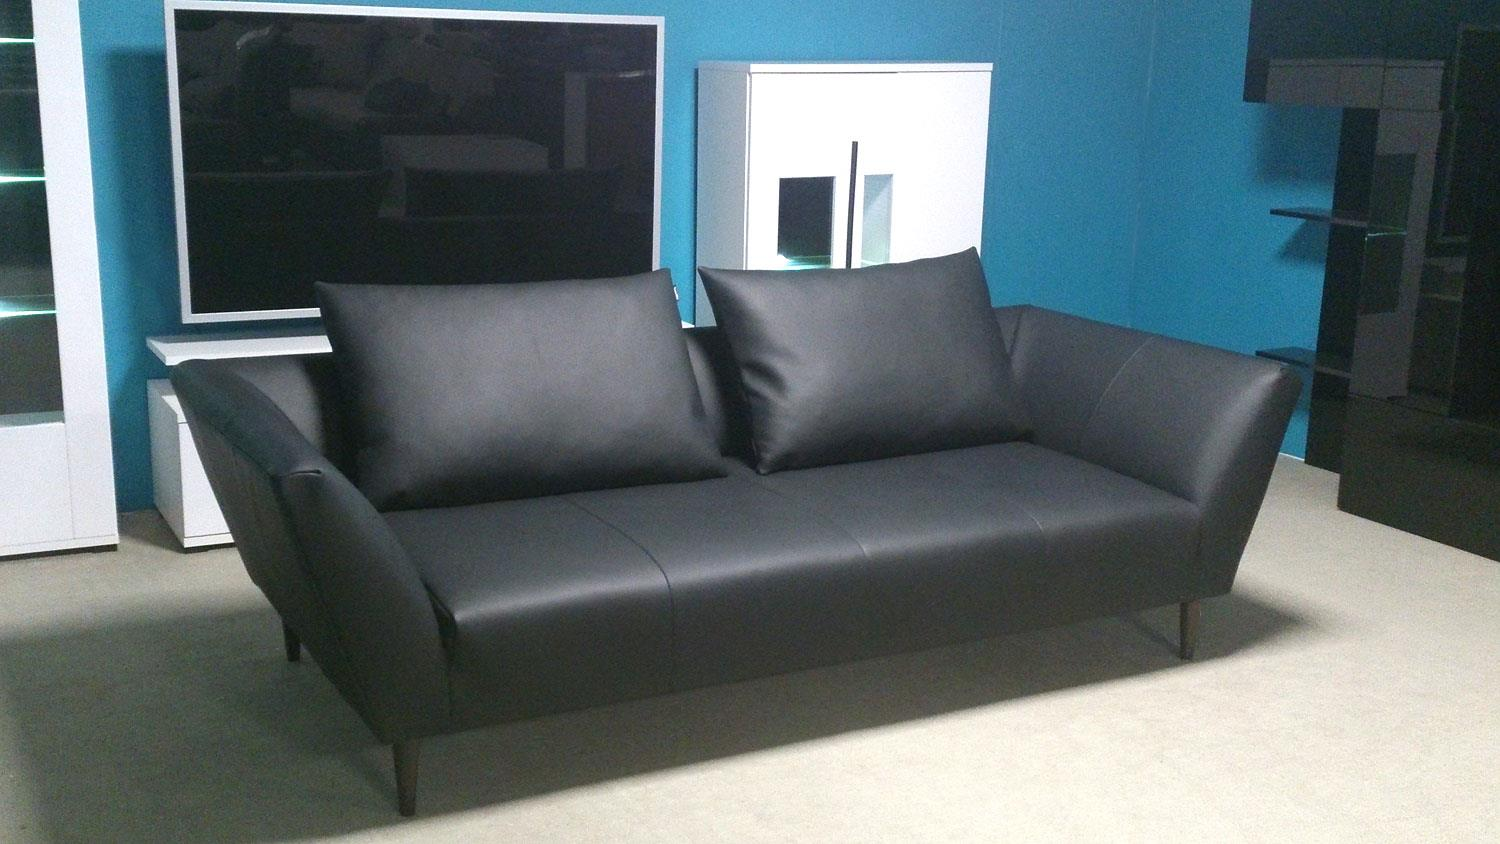 sofabank freistil 176 rolf benz leder schwarz mit 2 kissen. Black Bedroom Furniture Sets. Home Design Ideas